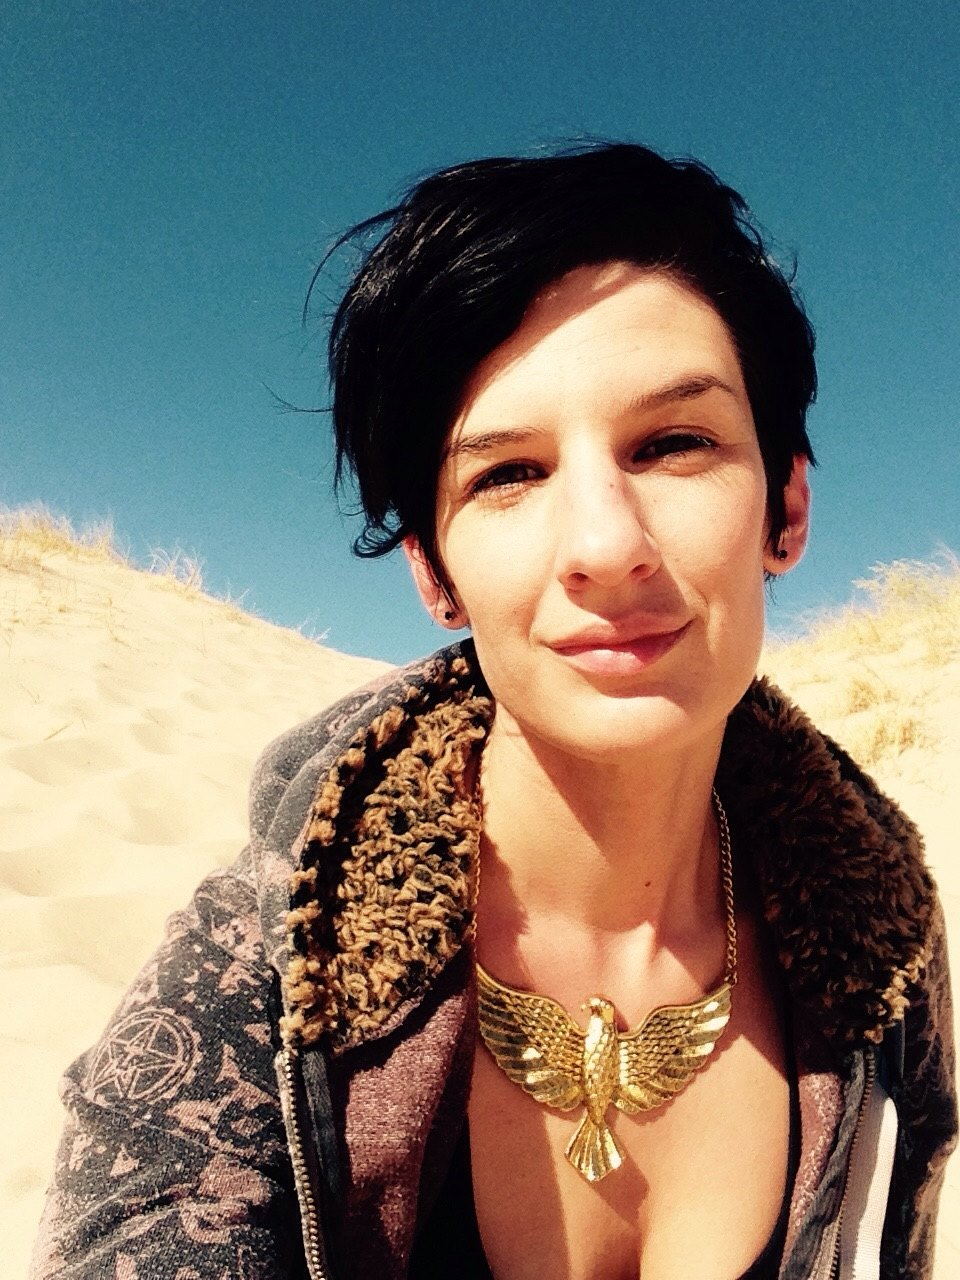 elizabeth coté sitting in Mojave sand dunes, smiling, wearing a golden hawk necklace.